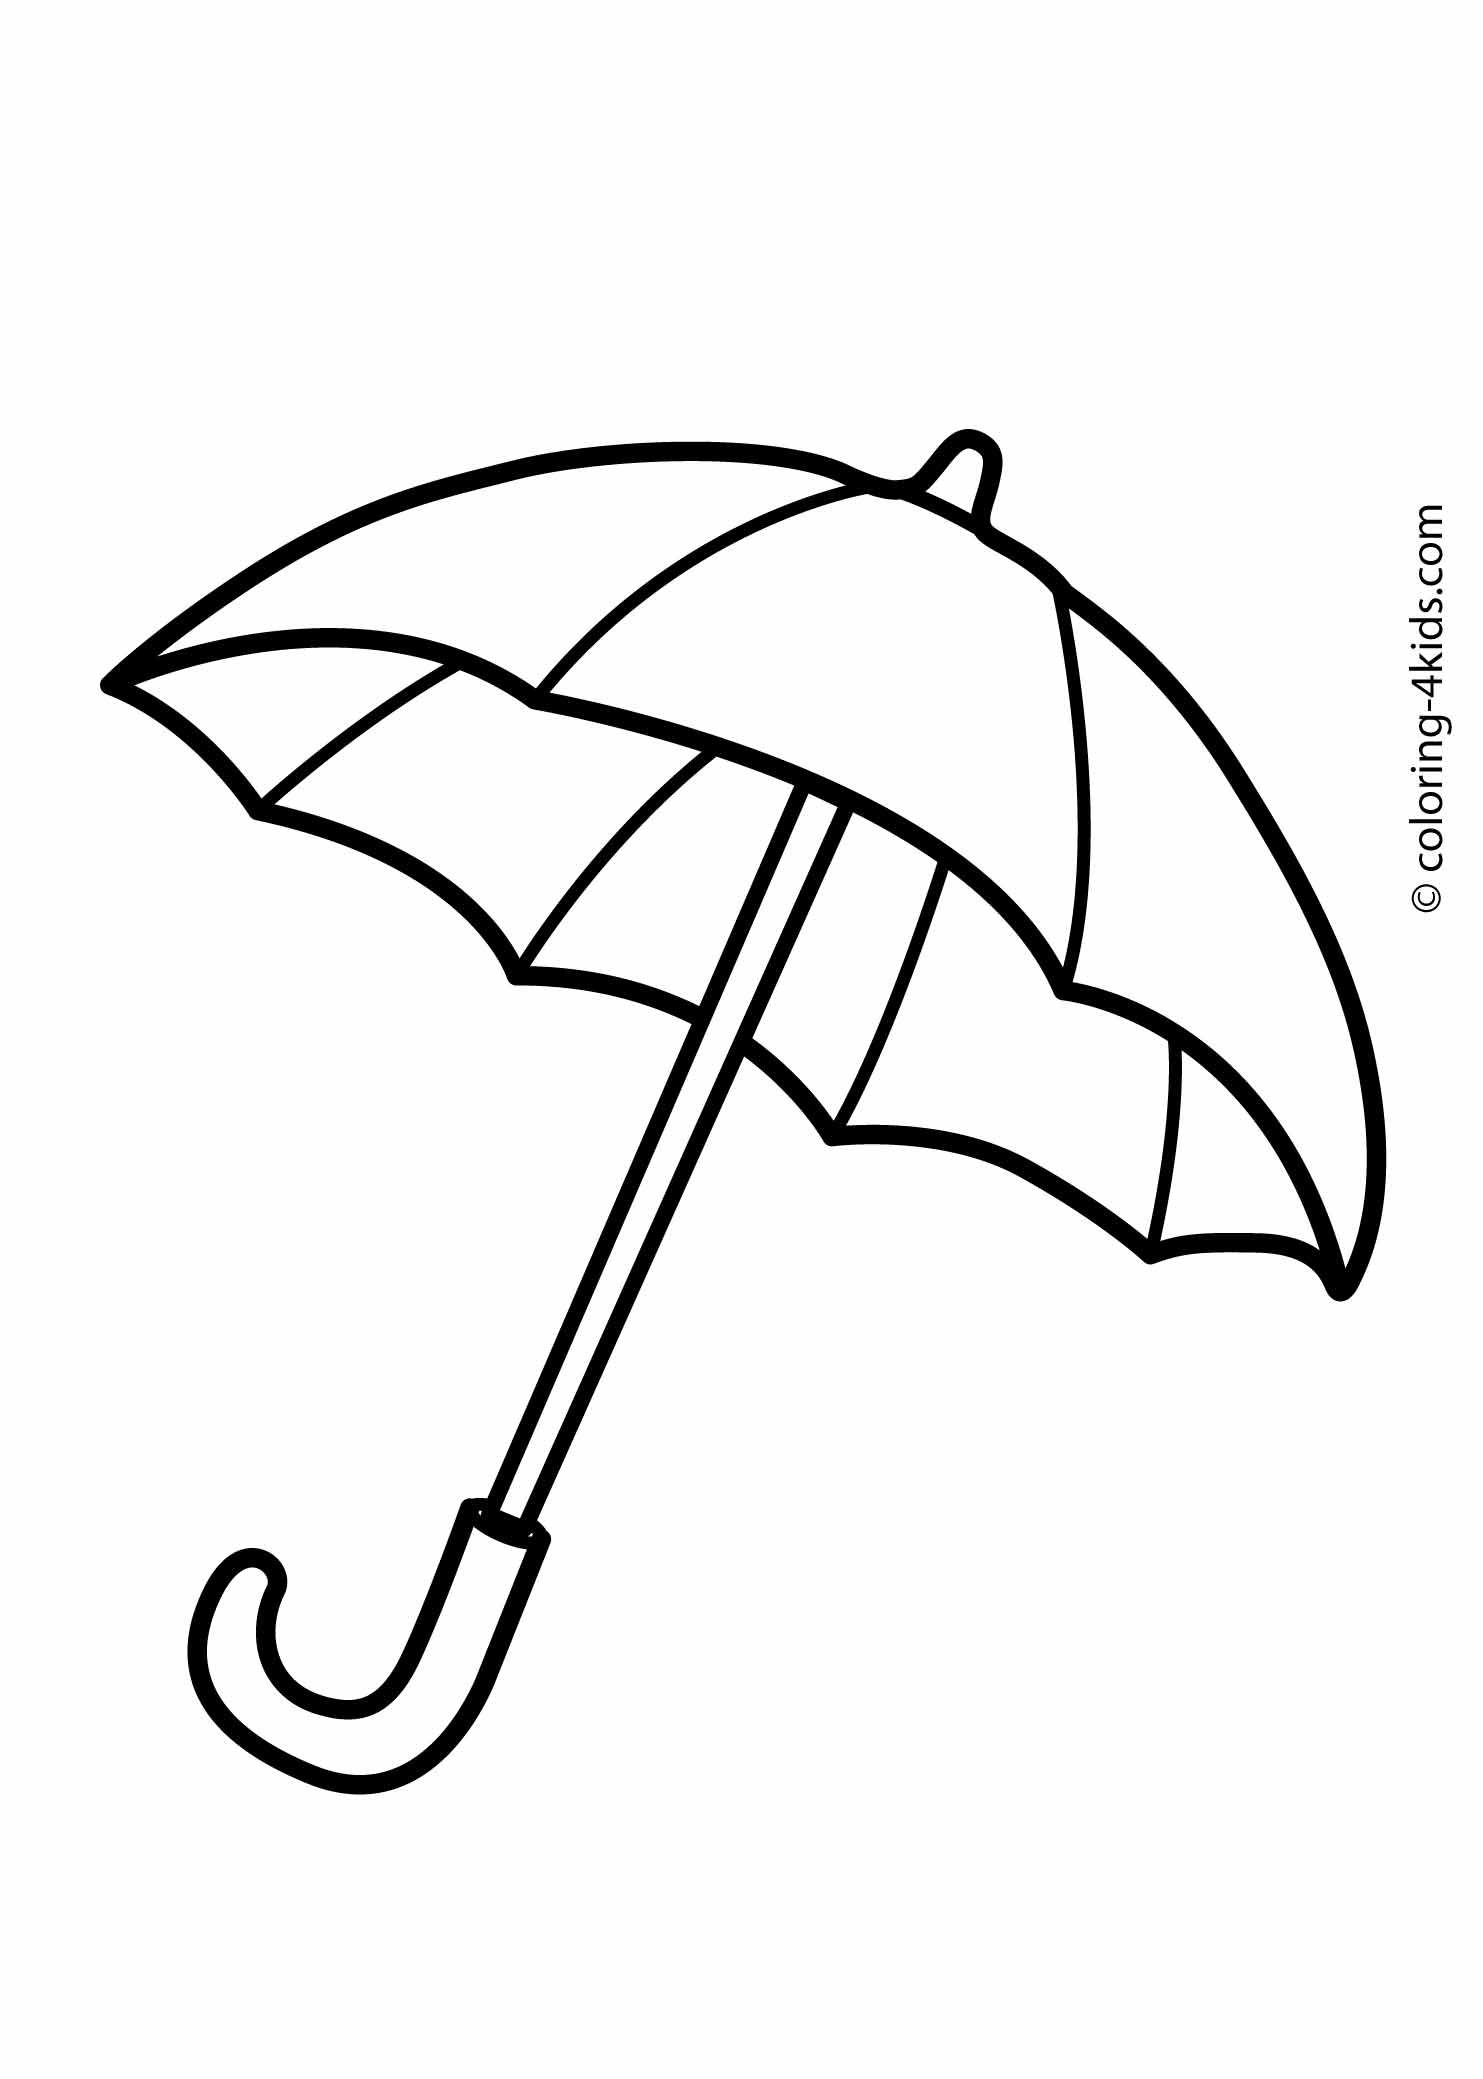 Pages for kids printable. Clipart umbrella coloring page